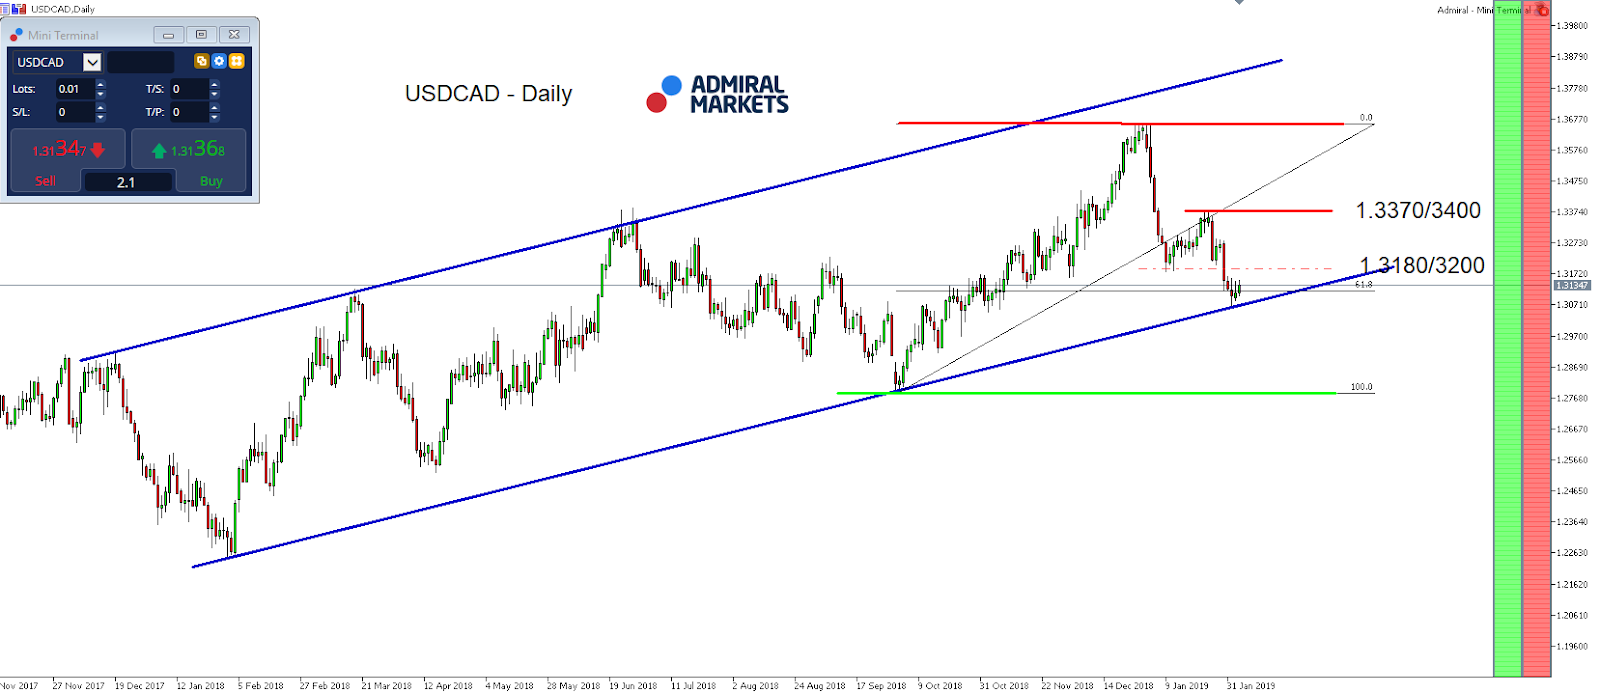 USD/CAD daily chart movement